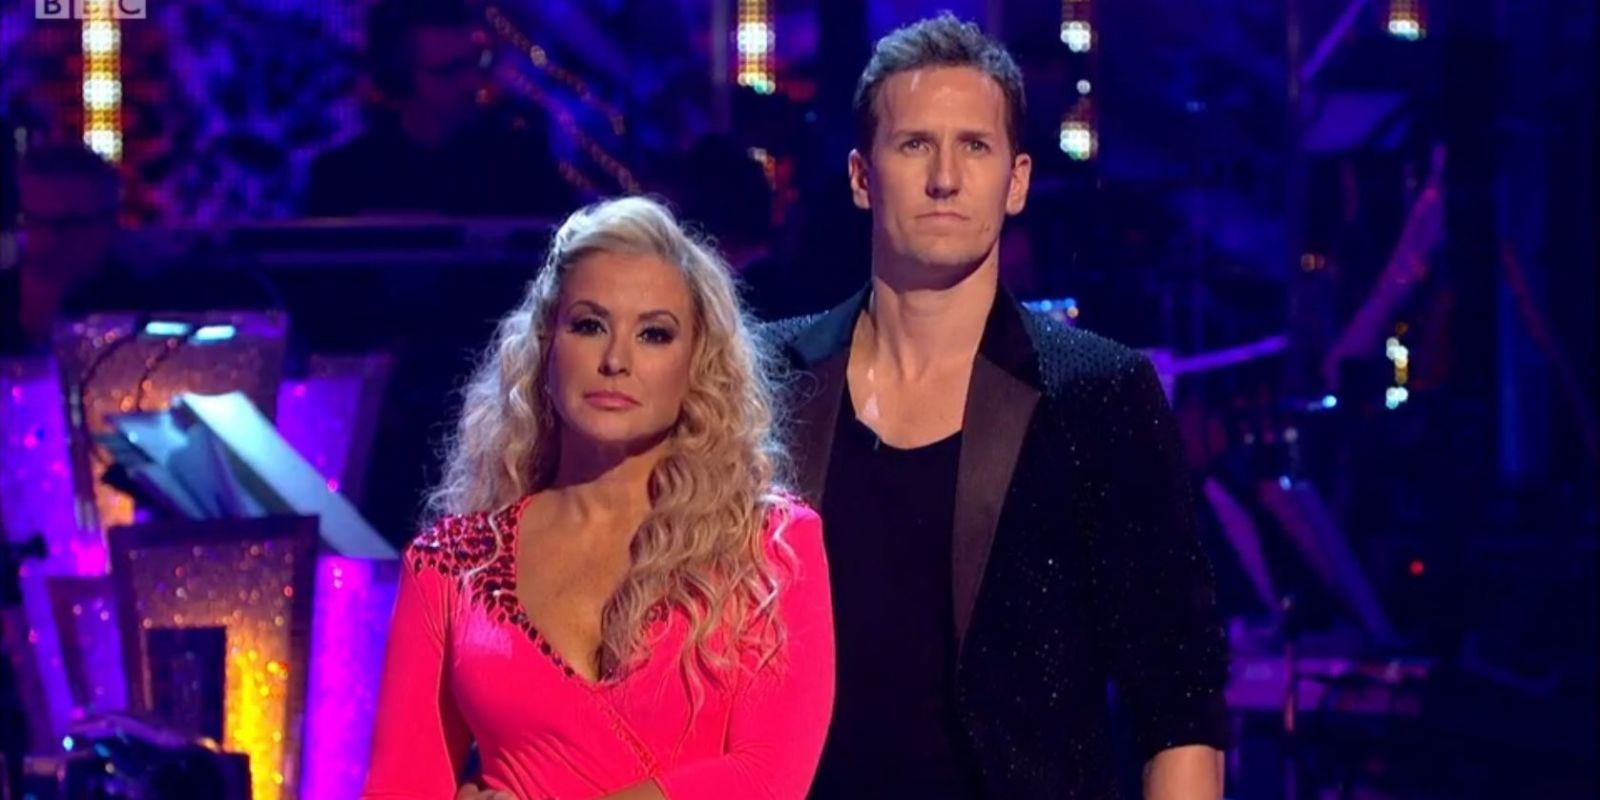 BBC rubbishes Strictly Come Dancing fix claims after Anastacia ...